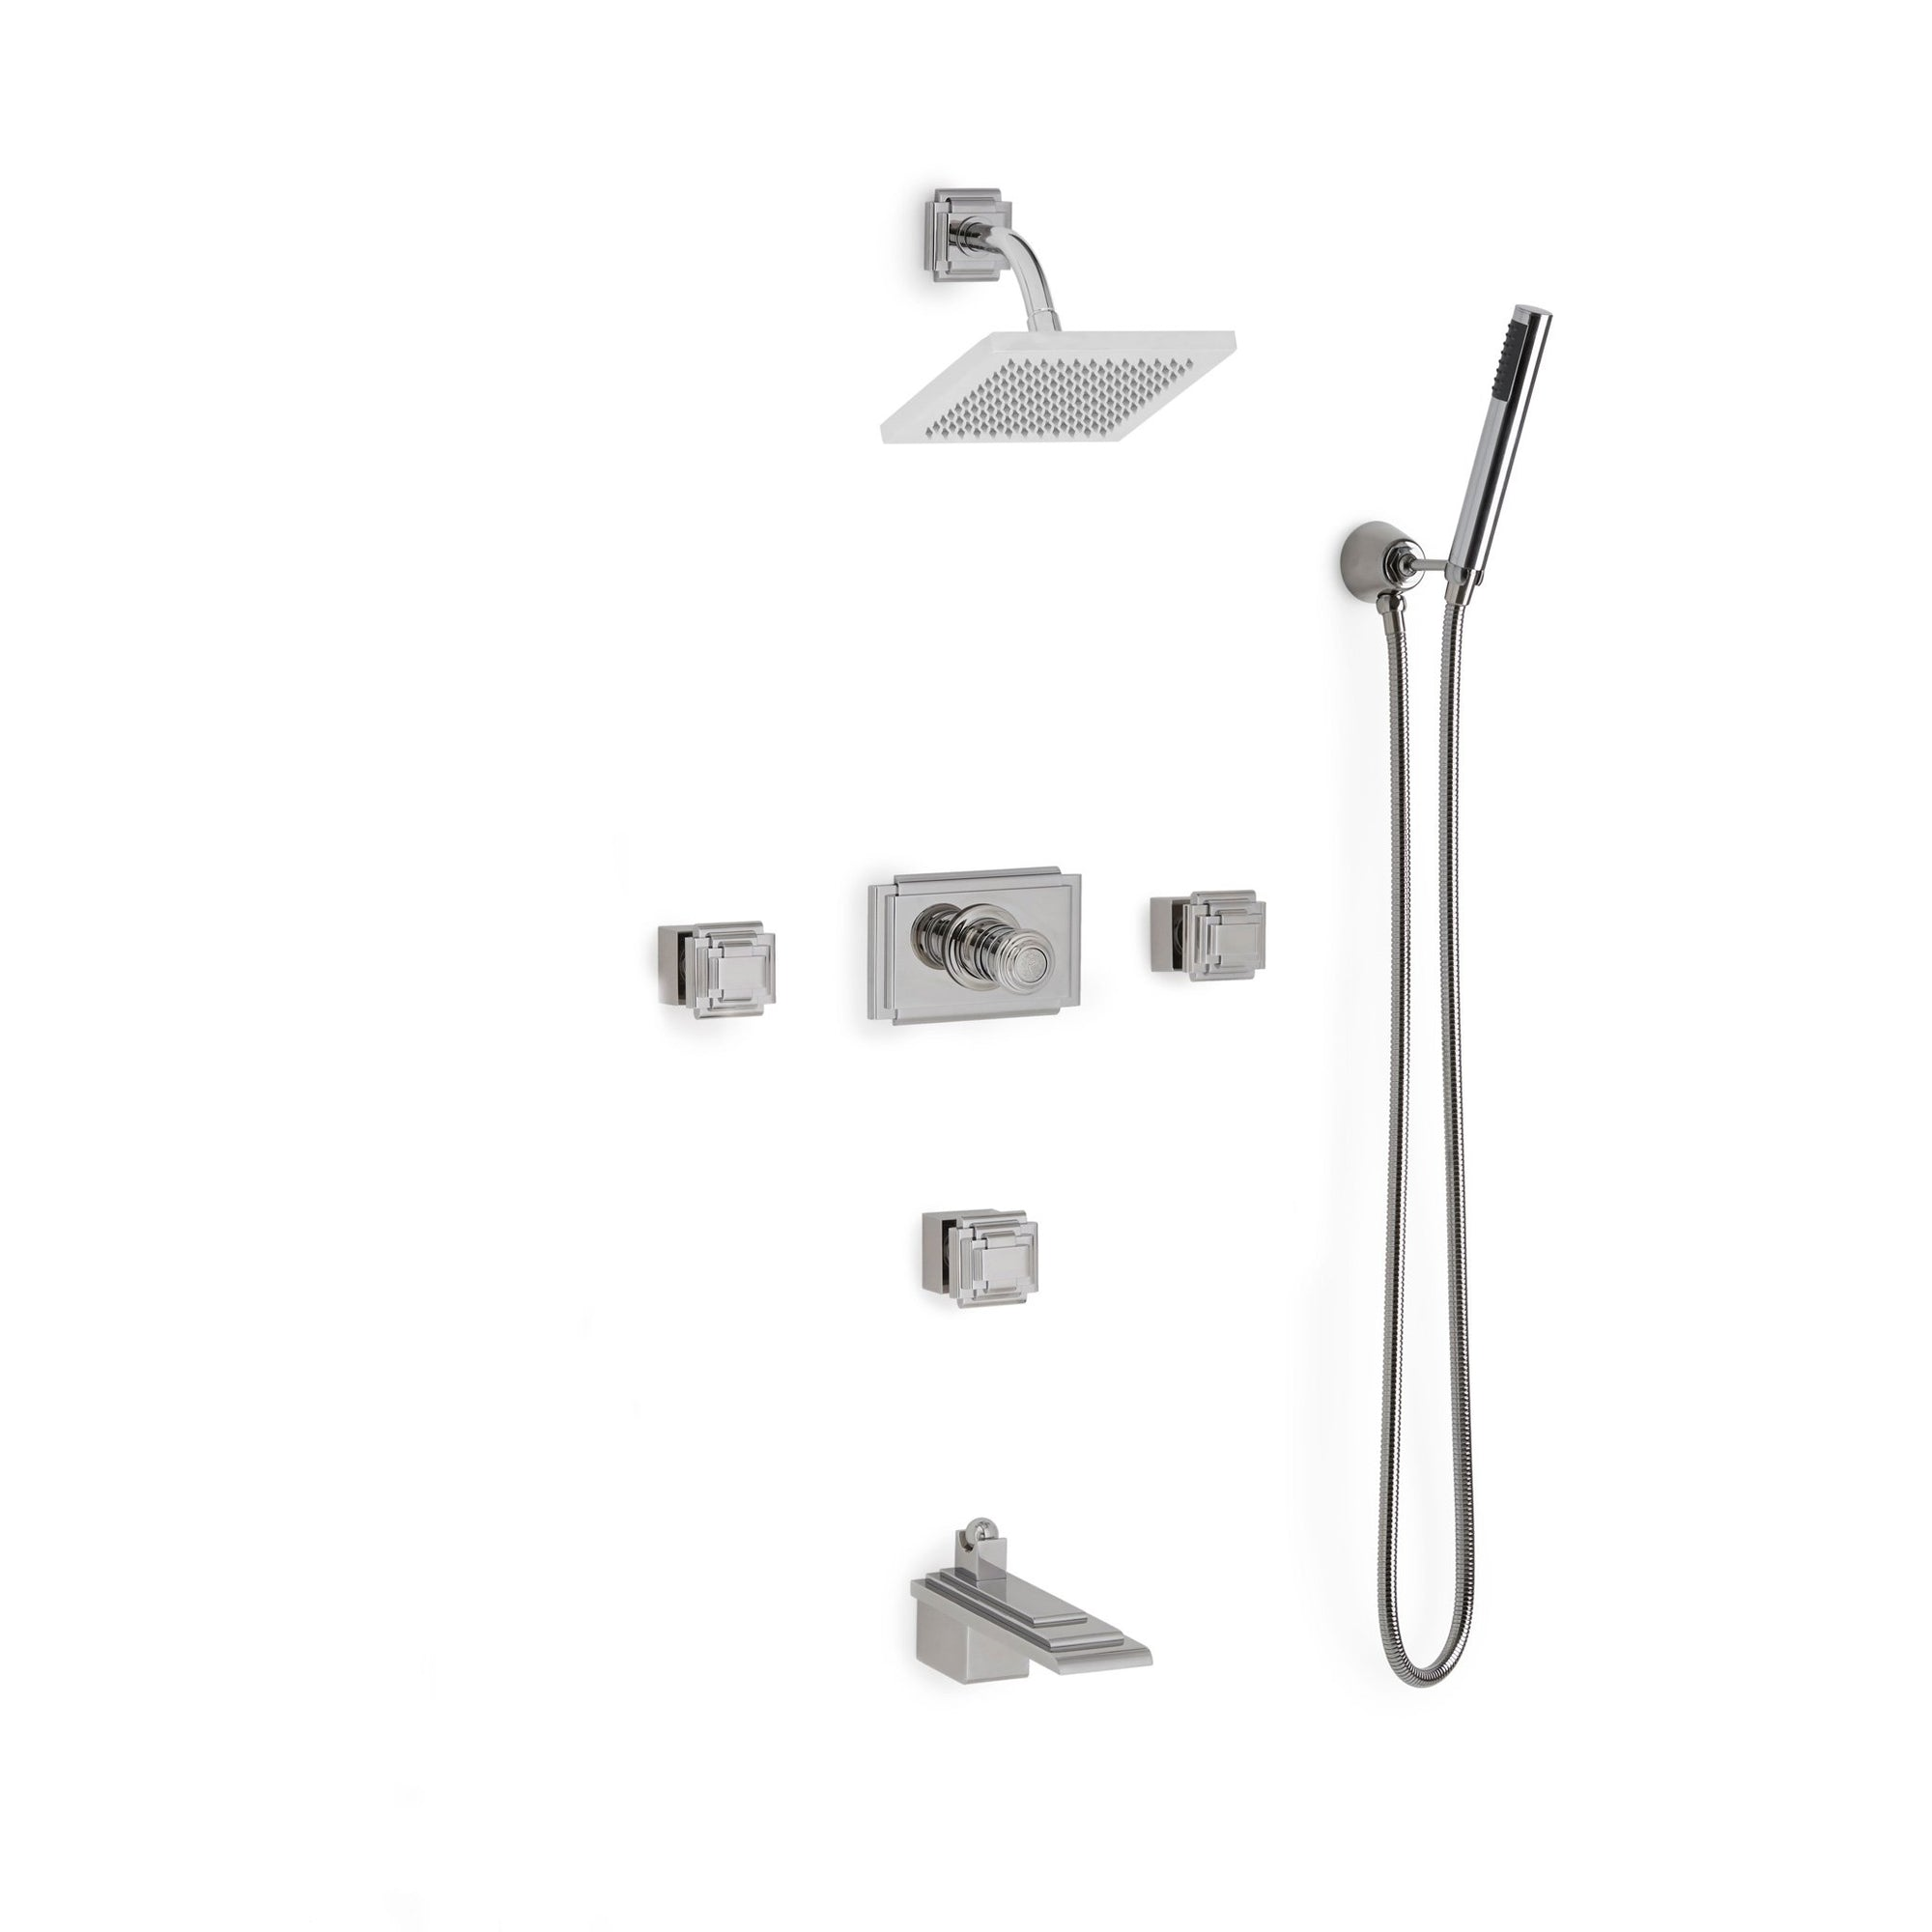 Sherle Wagner International Nouveau High Flow Thermostatic Shower and Tub System in Polished Chrome metal finish